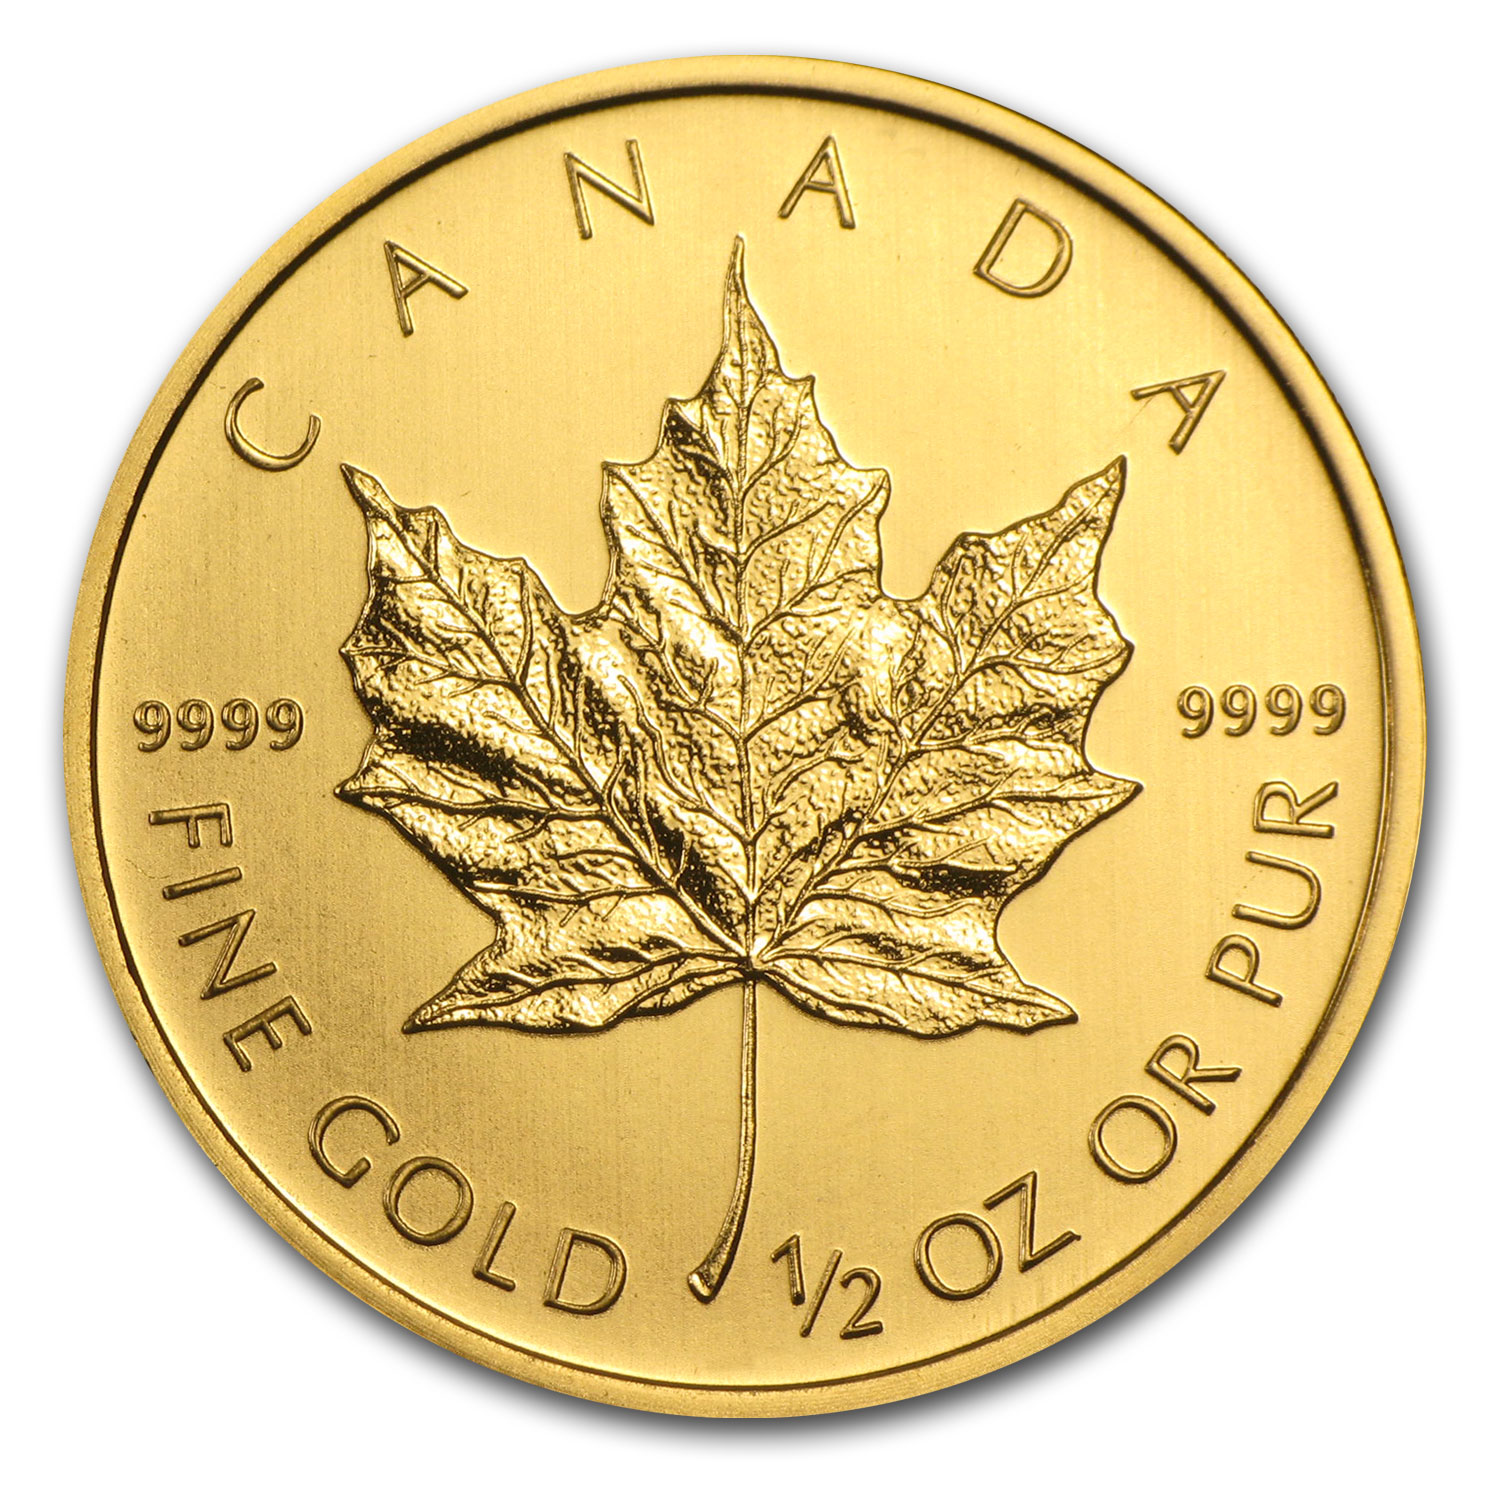 2013 Canada 1/2 oz Gold Maple Leaf BU